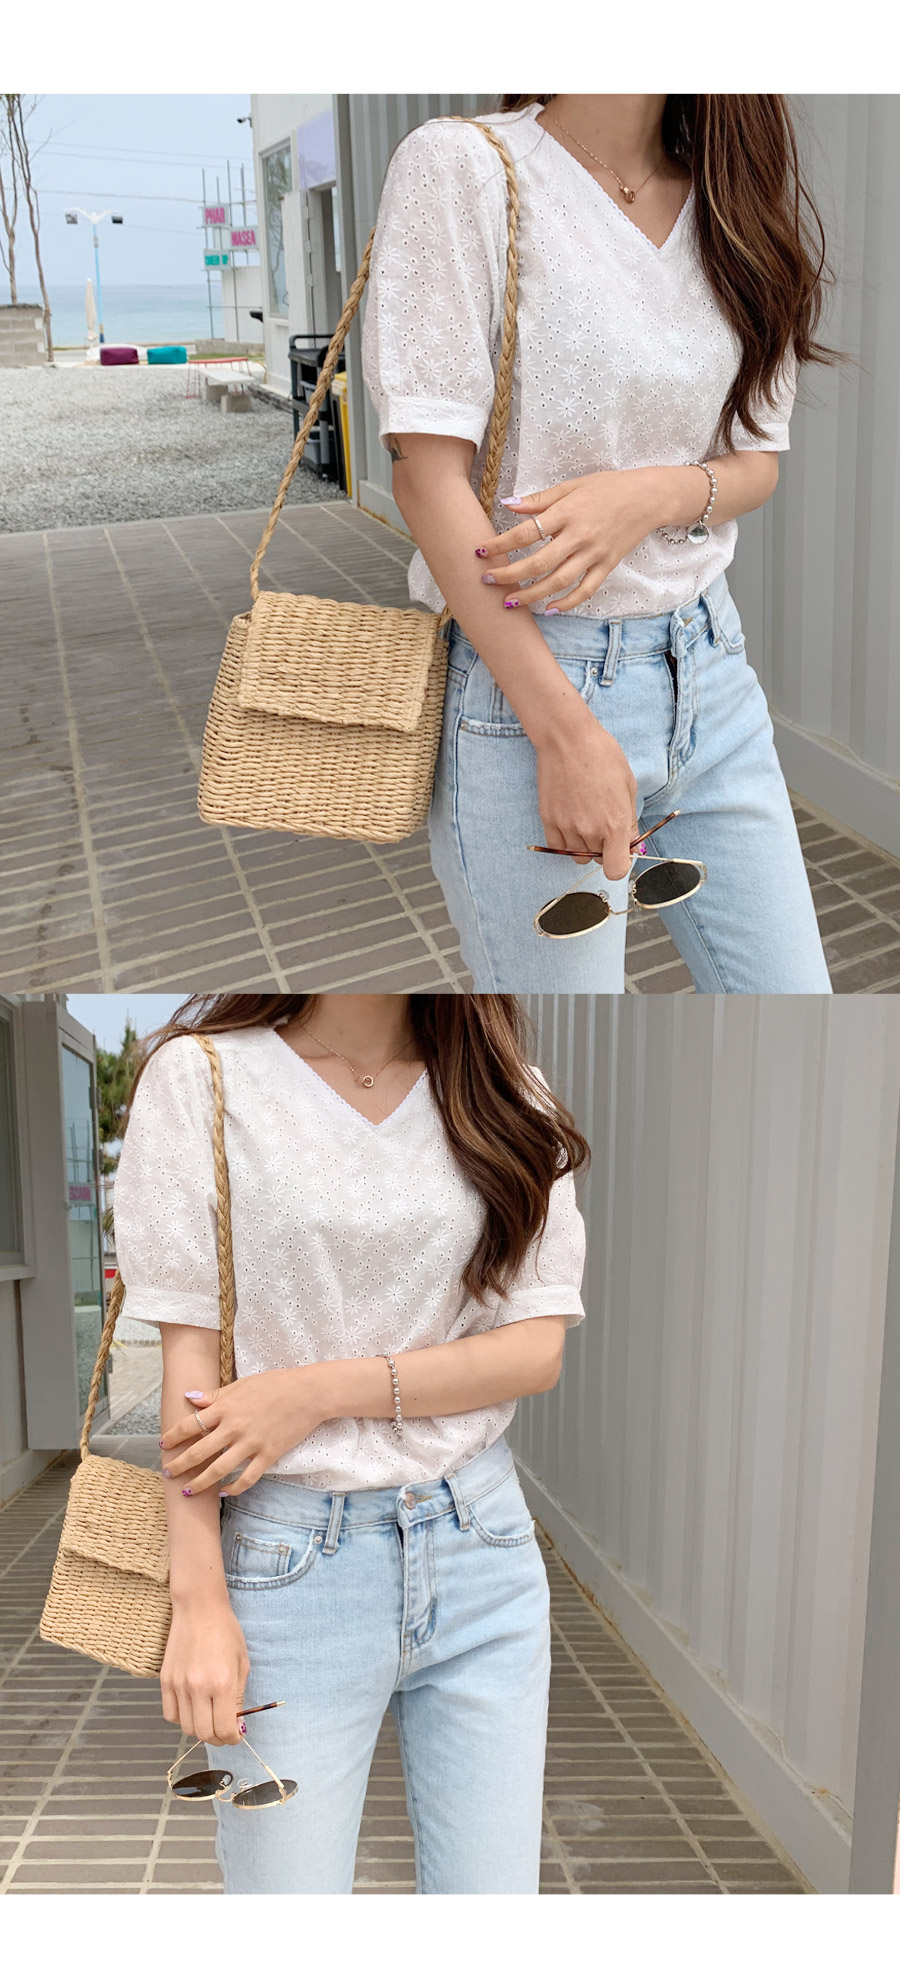 Romi punching lace blouse